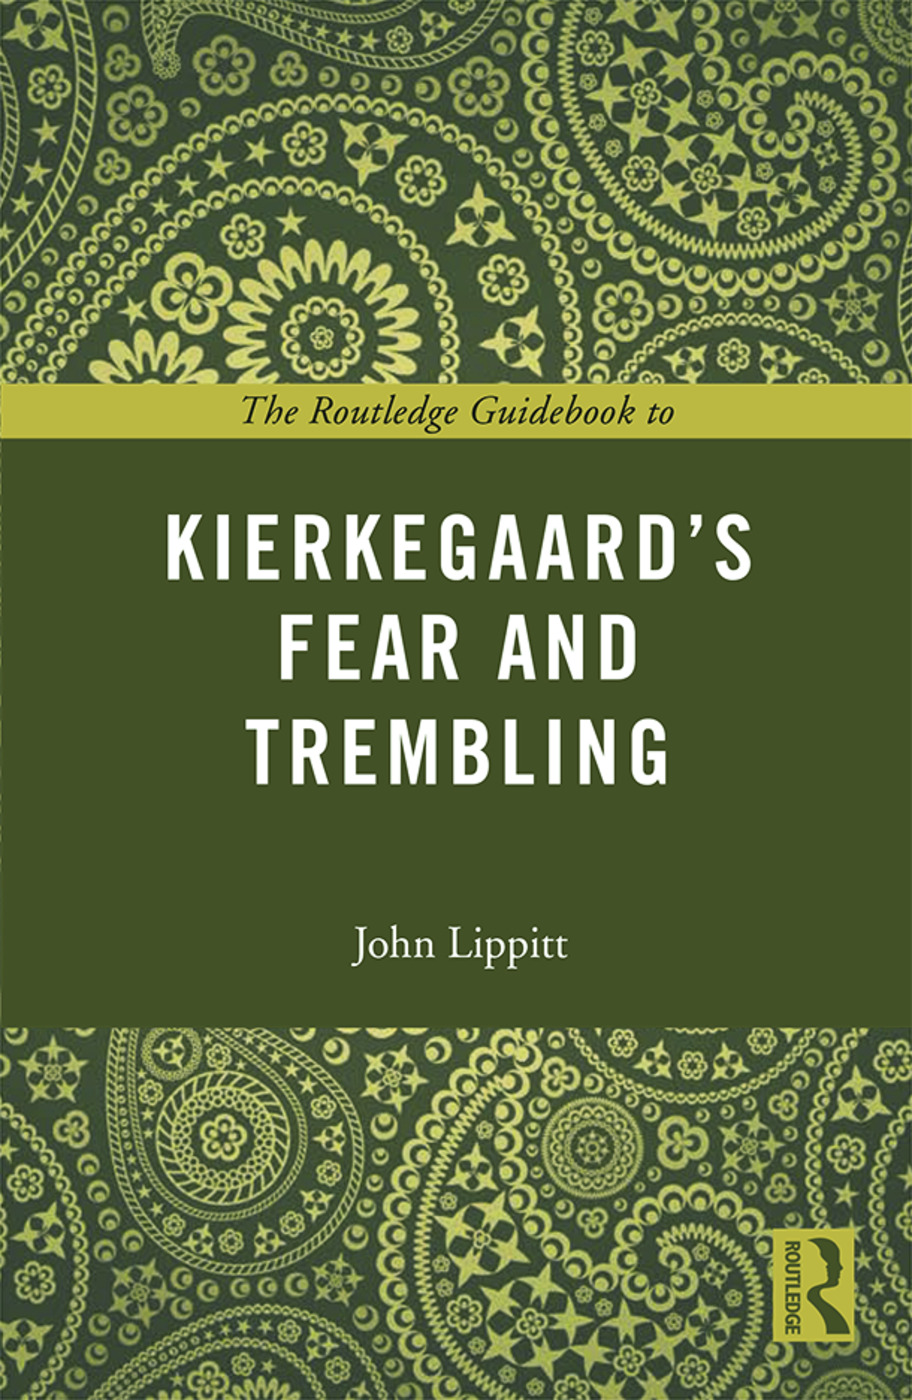 The Routledge Guidebook to Kierkegaard's Fear and Trembling book cover